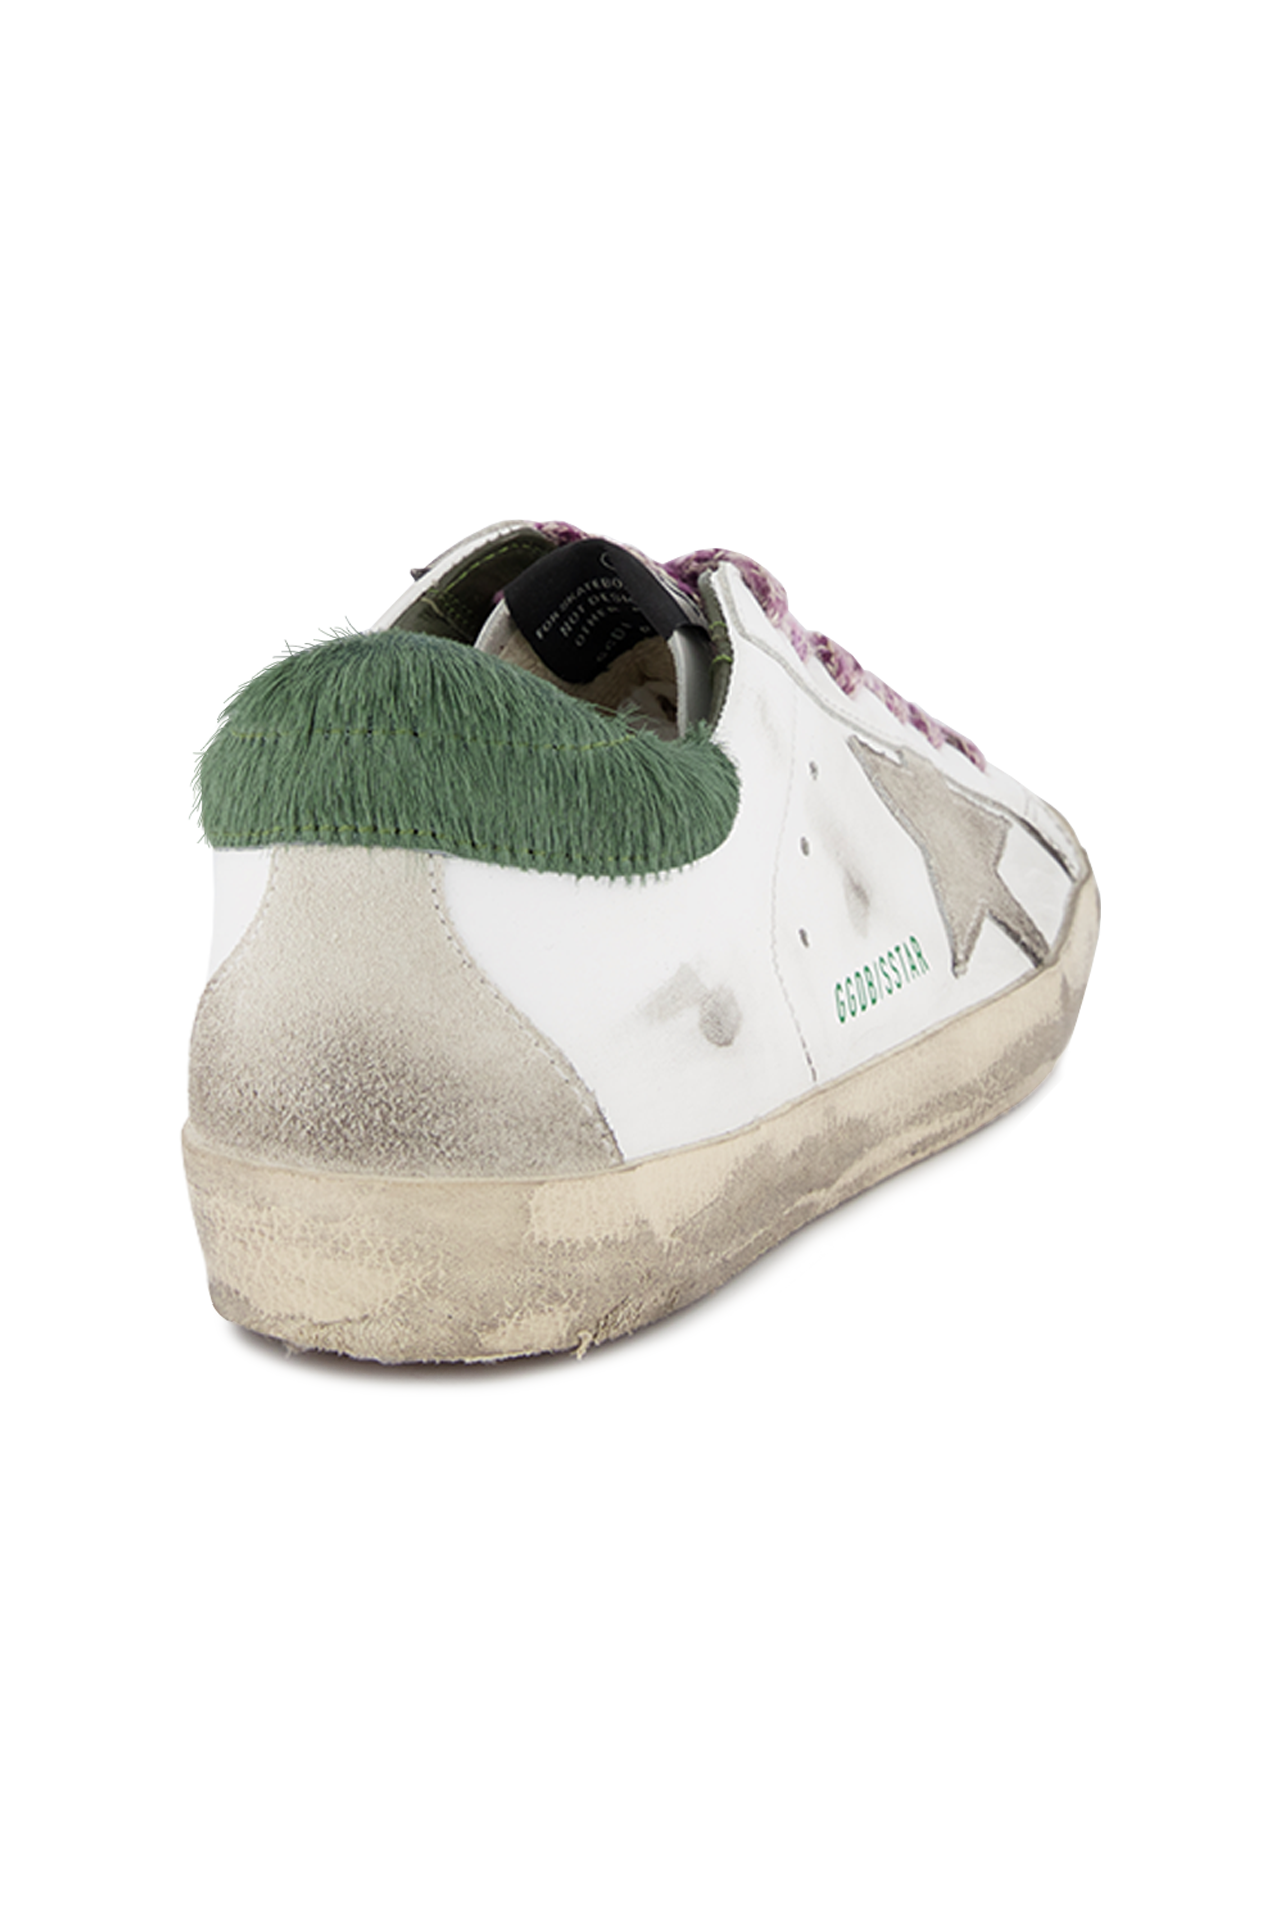 Back angled view image of Golden Goose Women's Superstar Sneaker White/Green